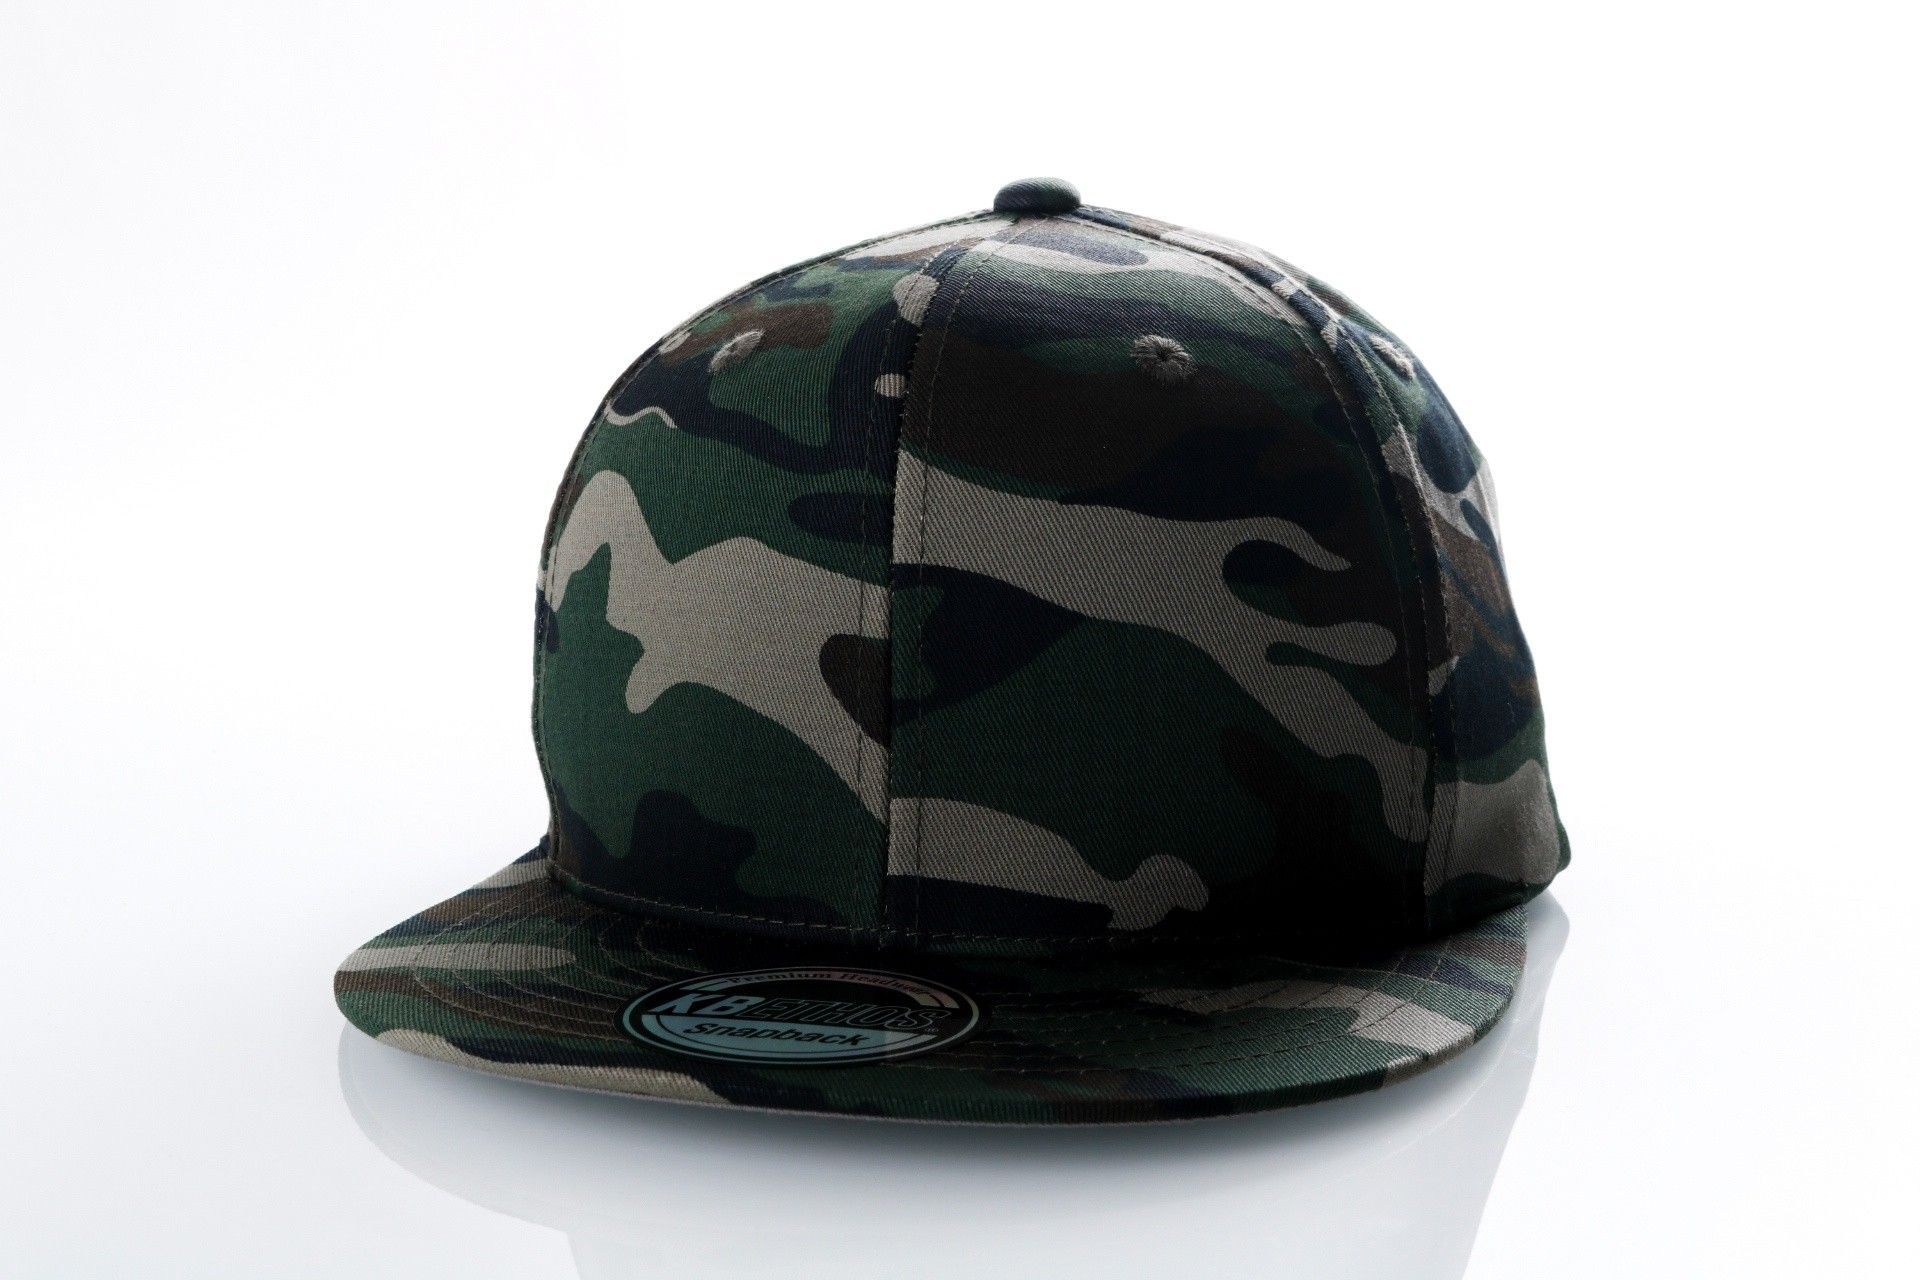 Afbeelding van Ethos Basic Snap Knw-1467 Camo Knw-1467 Dad Cap Camo